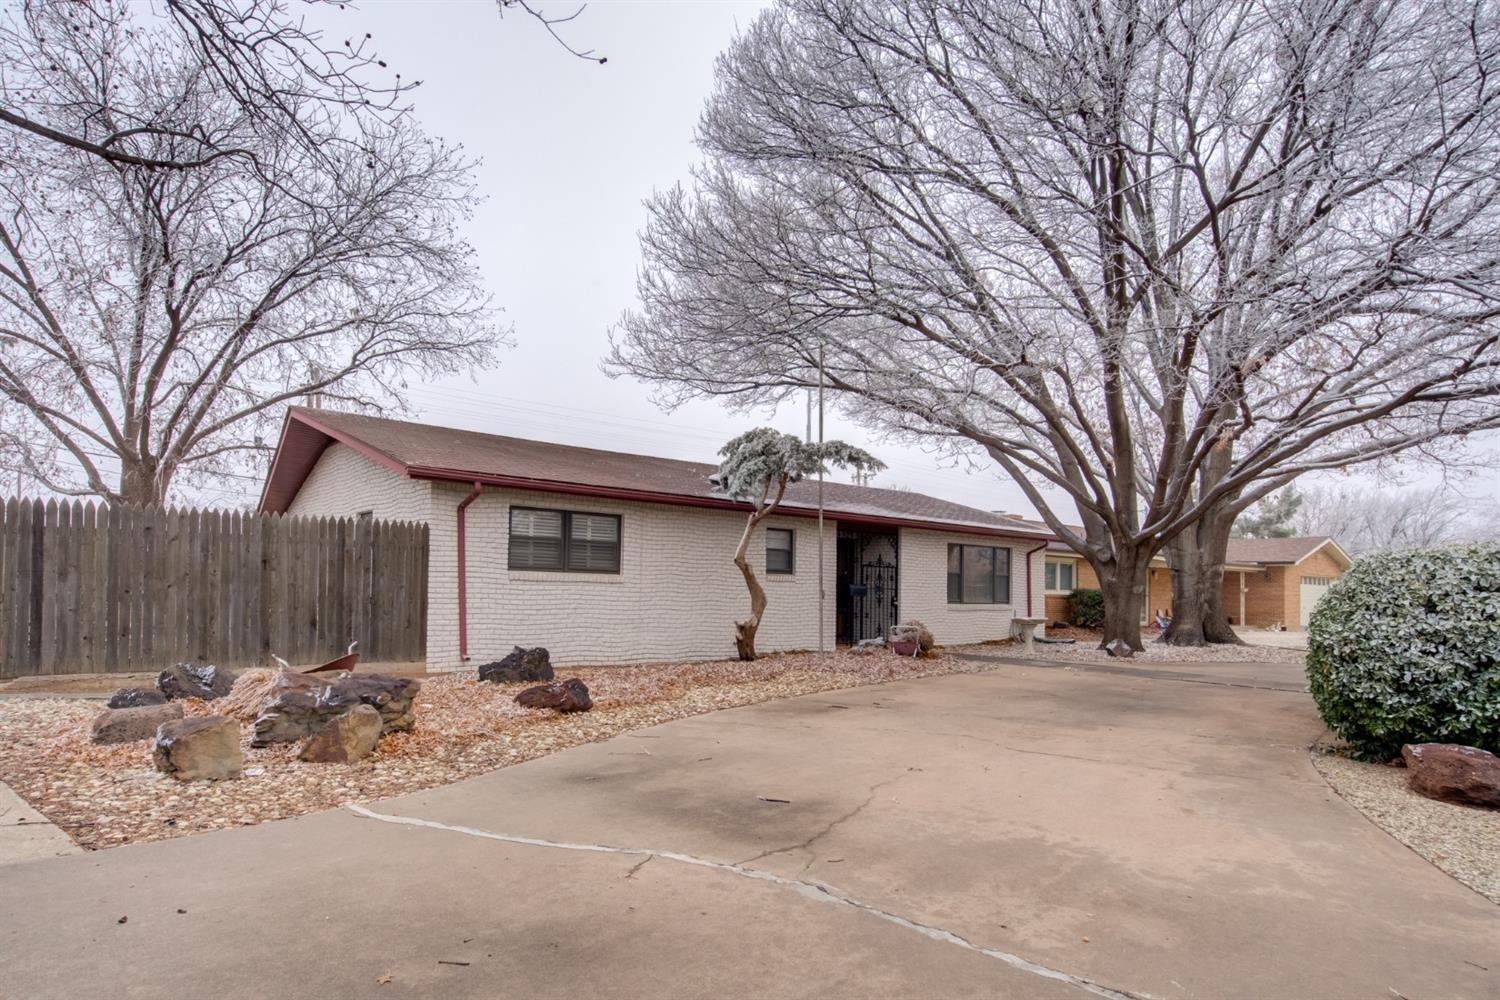 Hard to find 3/2/2 with RV parking located near Tech!  You won't want to miss seeing this one featuring an open concept floor plan with spacious rooms and the cutest back yard.  The corner lot offers plenty of space for parking along with a circle drive, rear entry garage and RV parking in the back all enclosed with an electronic gate.  The adorable kitchen provides plenty of workspace and a large breakfast bar while the living area offers a cozy fireplace.  With many extras such as updated lighting, plantation shutters and a new roof coming you'll want to add this to your must see list.